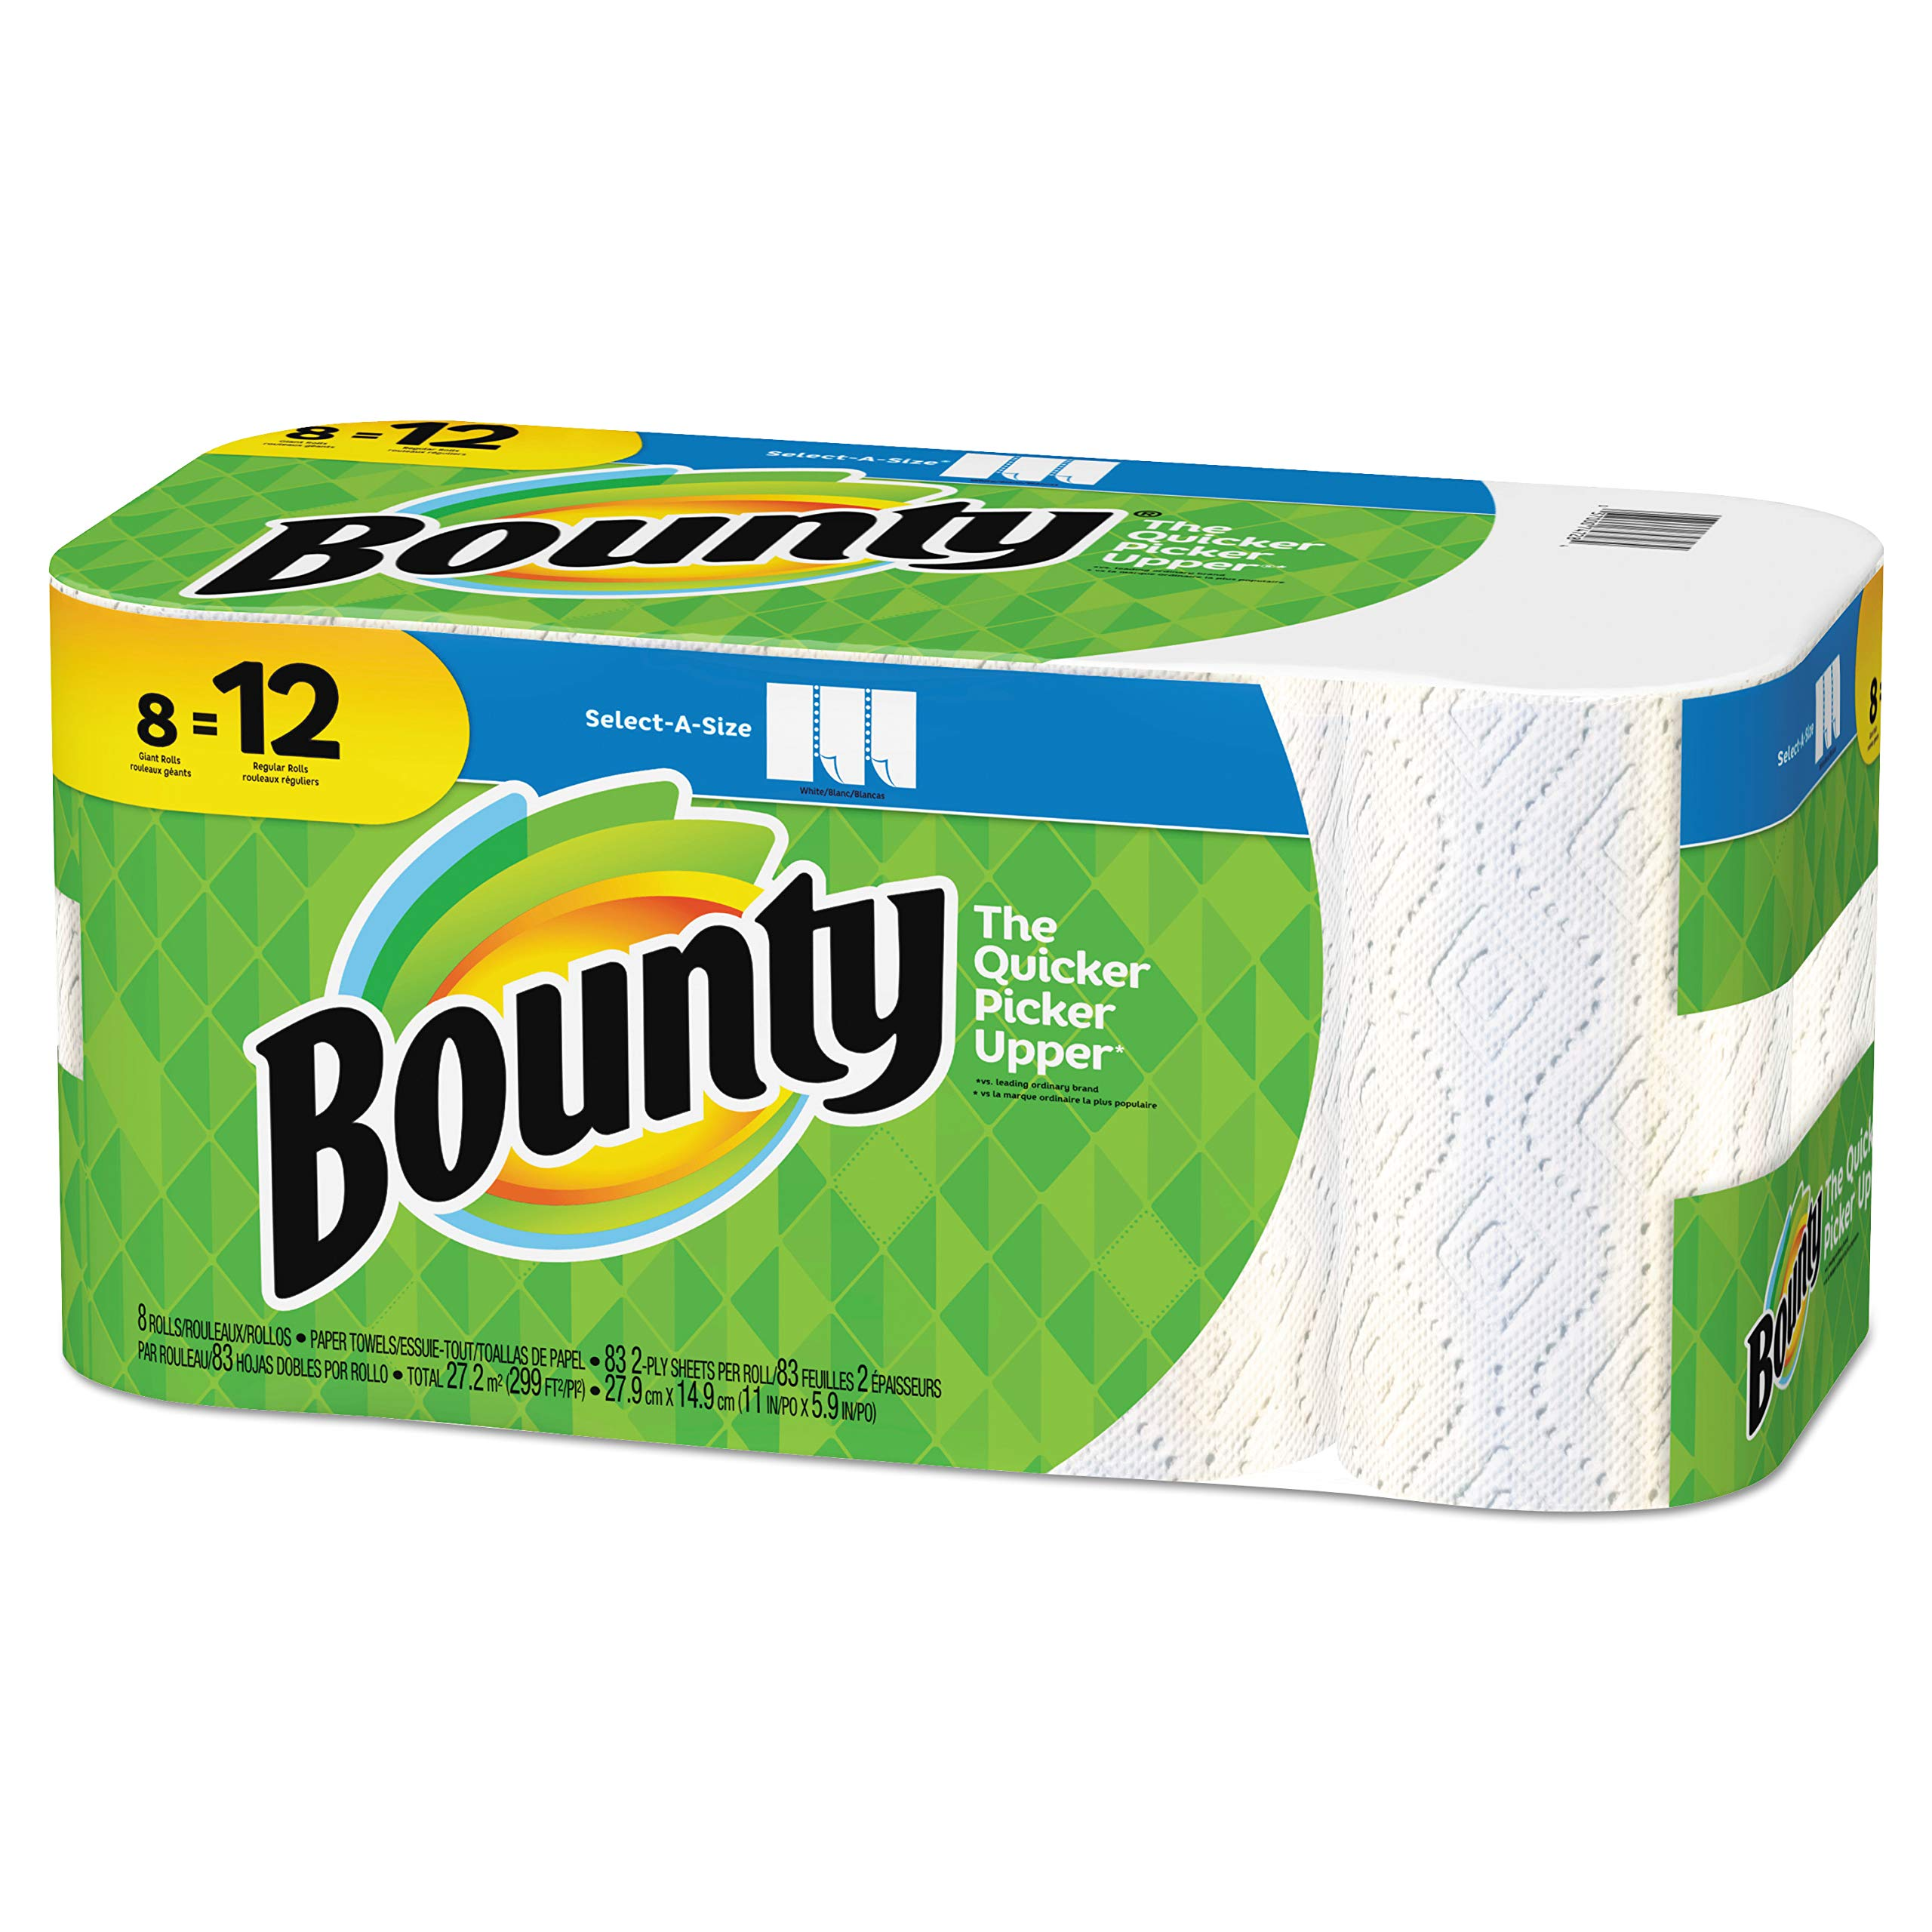 Bounty 74728 Select-a-Size Paper Towels, 2-Ply, White,